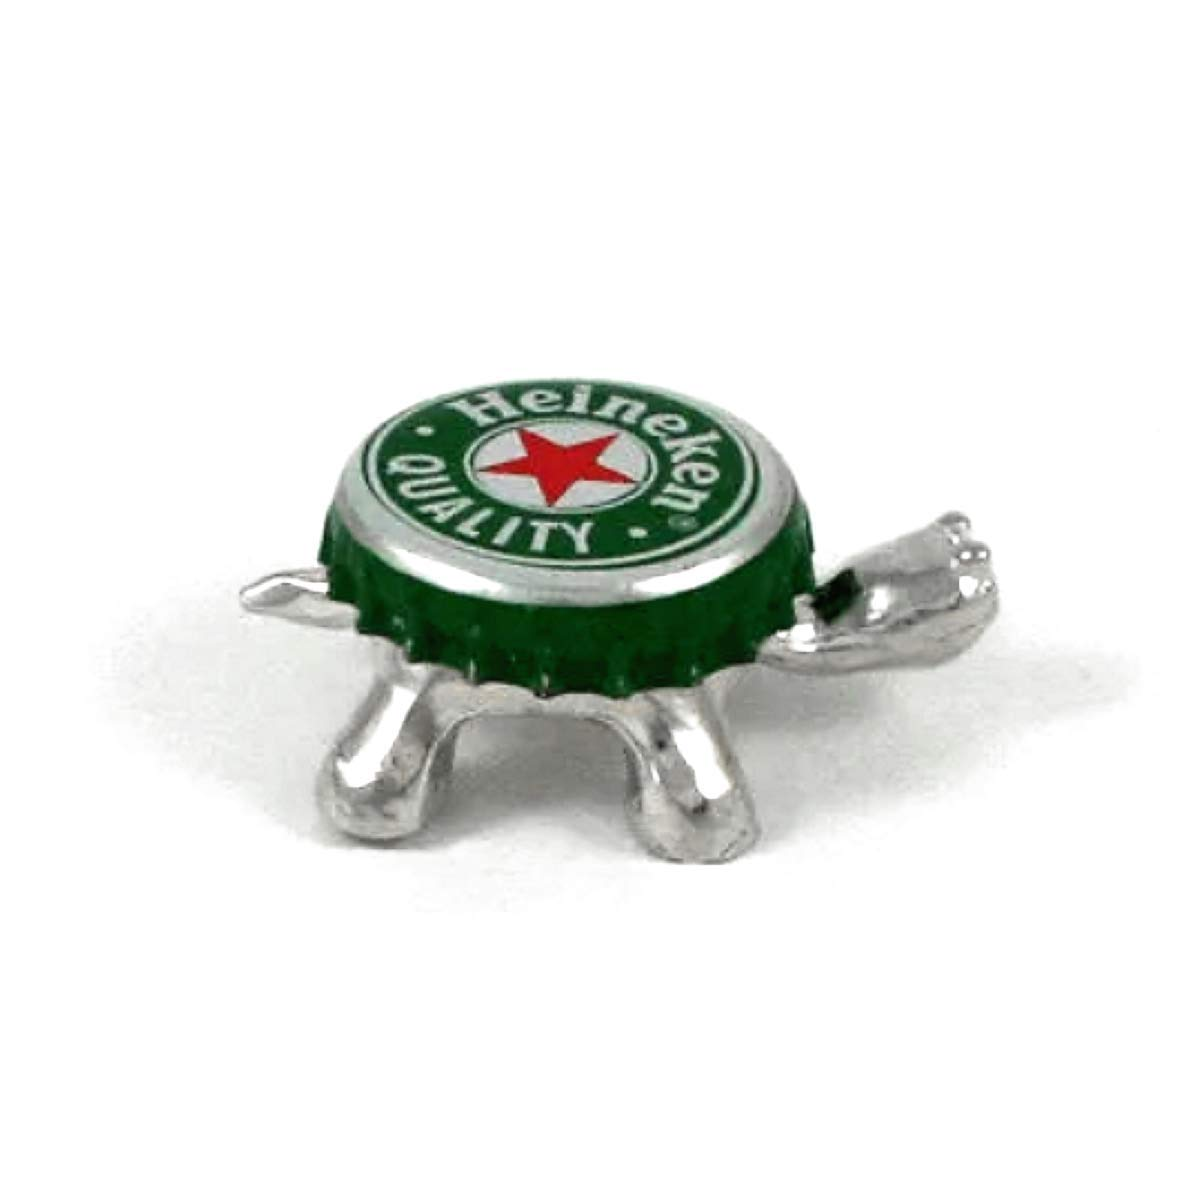 Handcrafted Pewter Made in USA Recycled Bottle Cap Turtle Gift Boxed with Story Card Magnetic Change the Cap